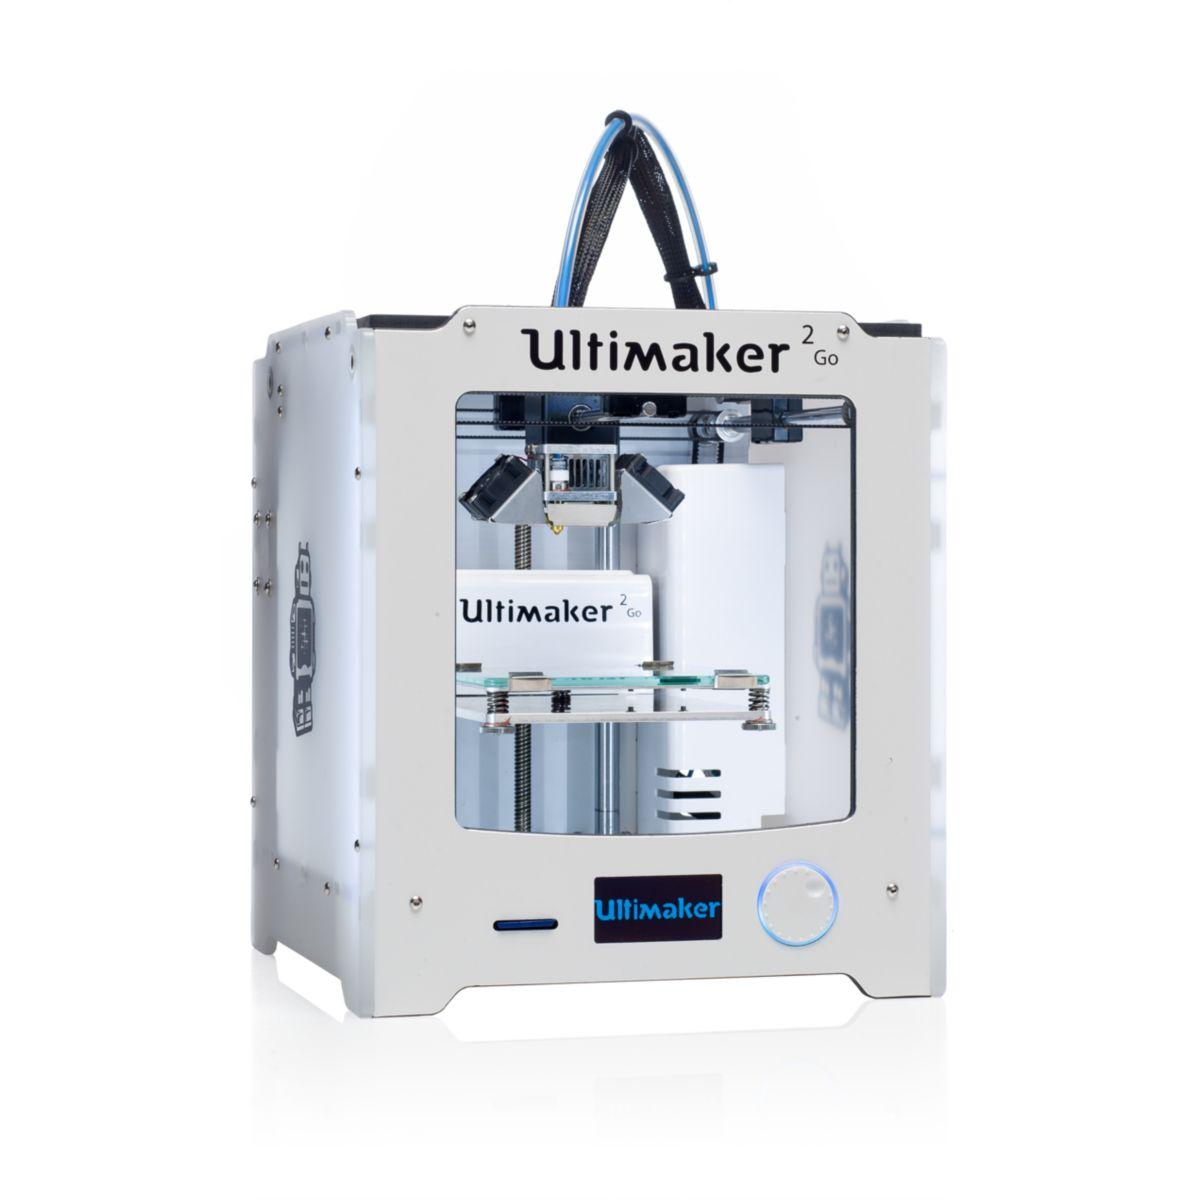 Imprimante essentielb ultimaker 2go (photo)